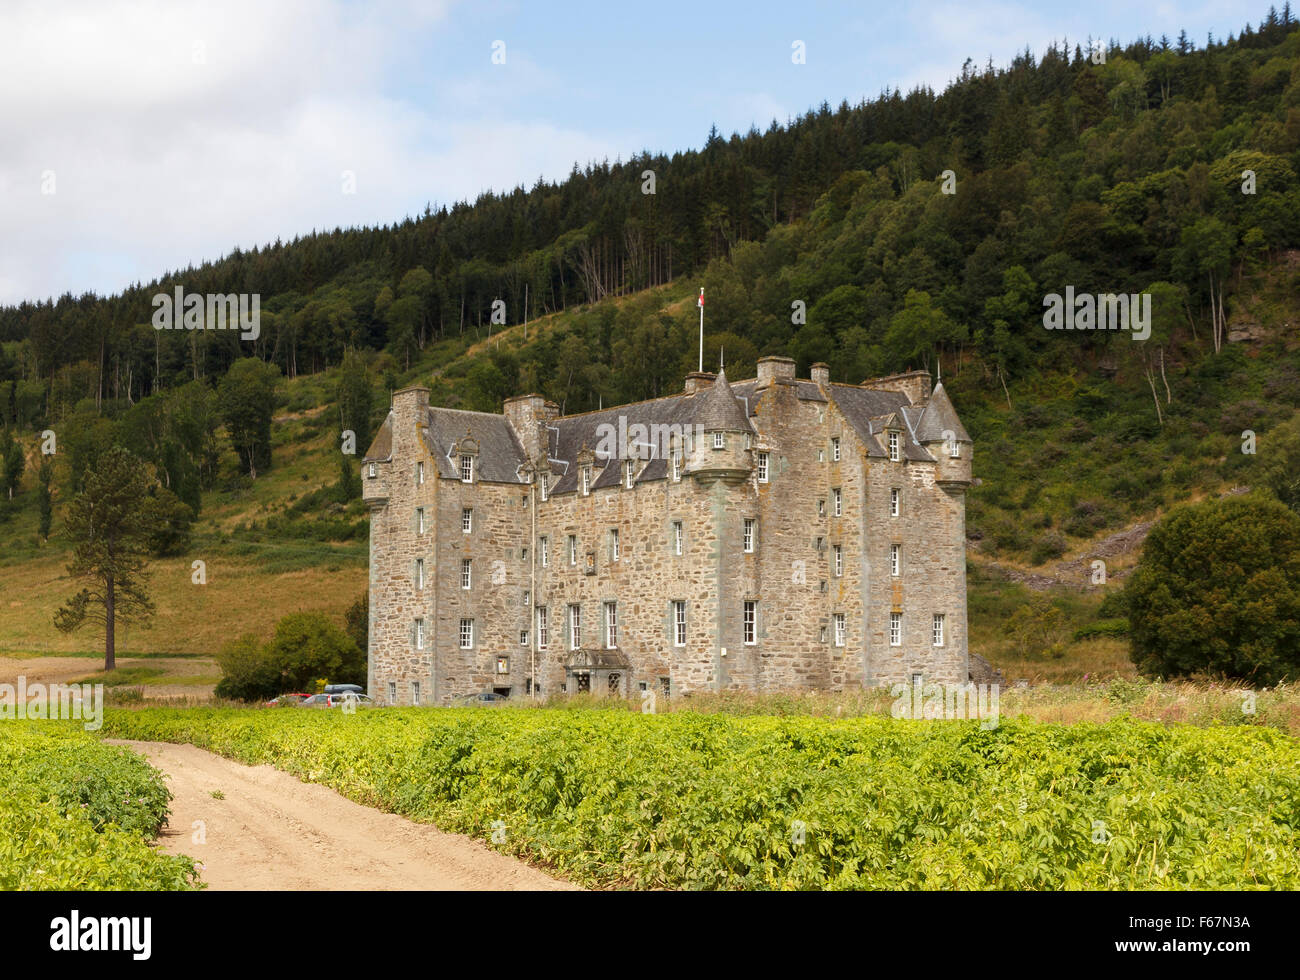 Castle Menzies is situated just outside the town of Aberfeldy, Perth and Kinross, Scotland - Stock Image